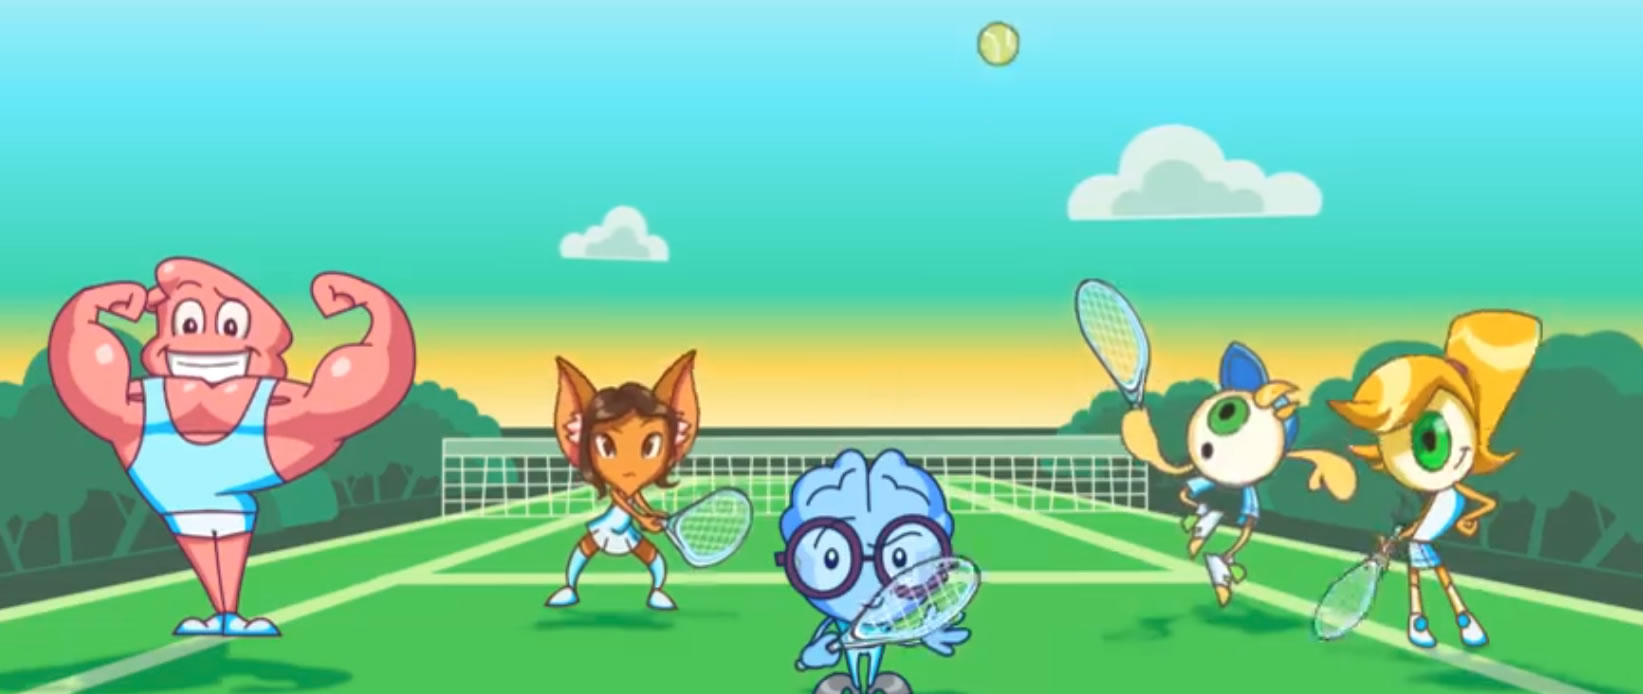 Mind Zone Tennis Classes and Education for Children in Weybridge Cobham and Esher